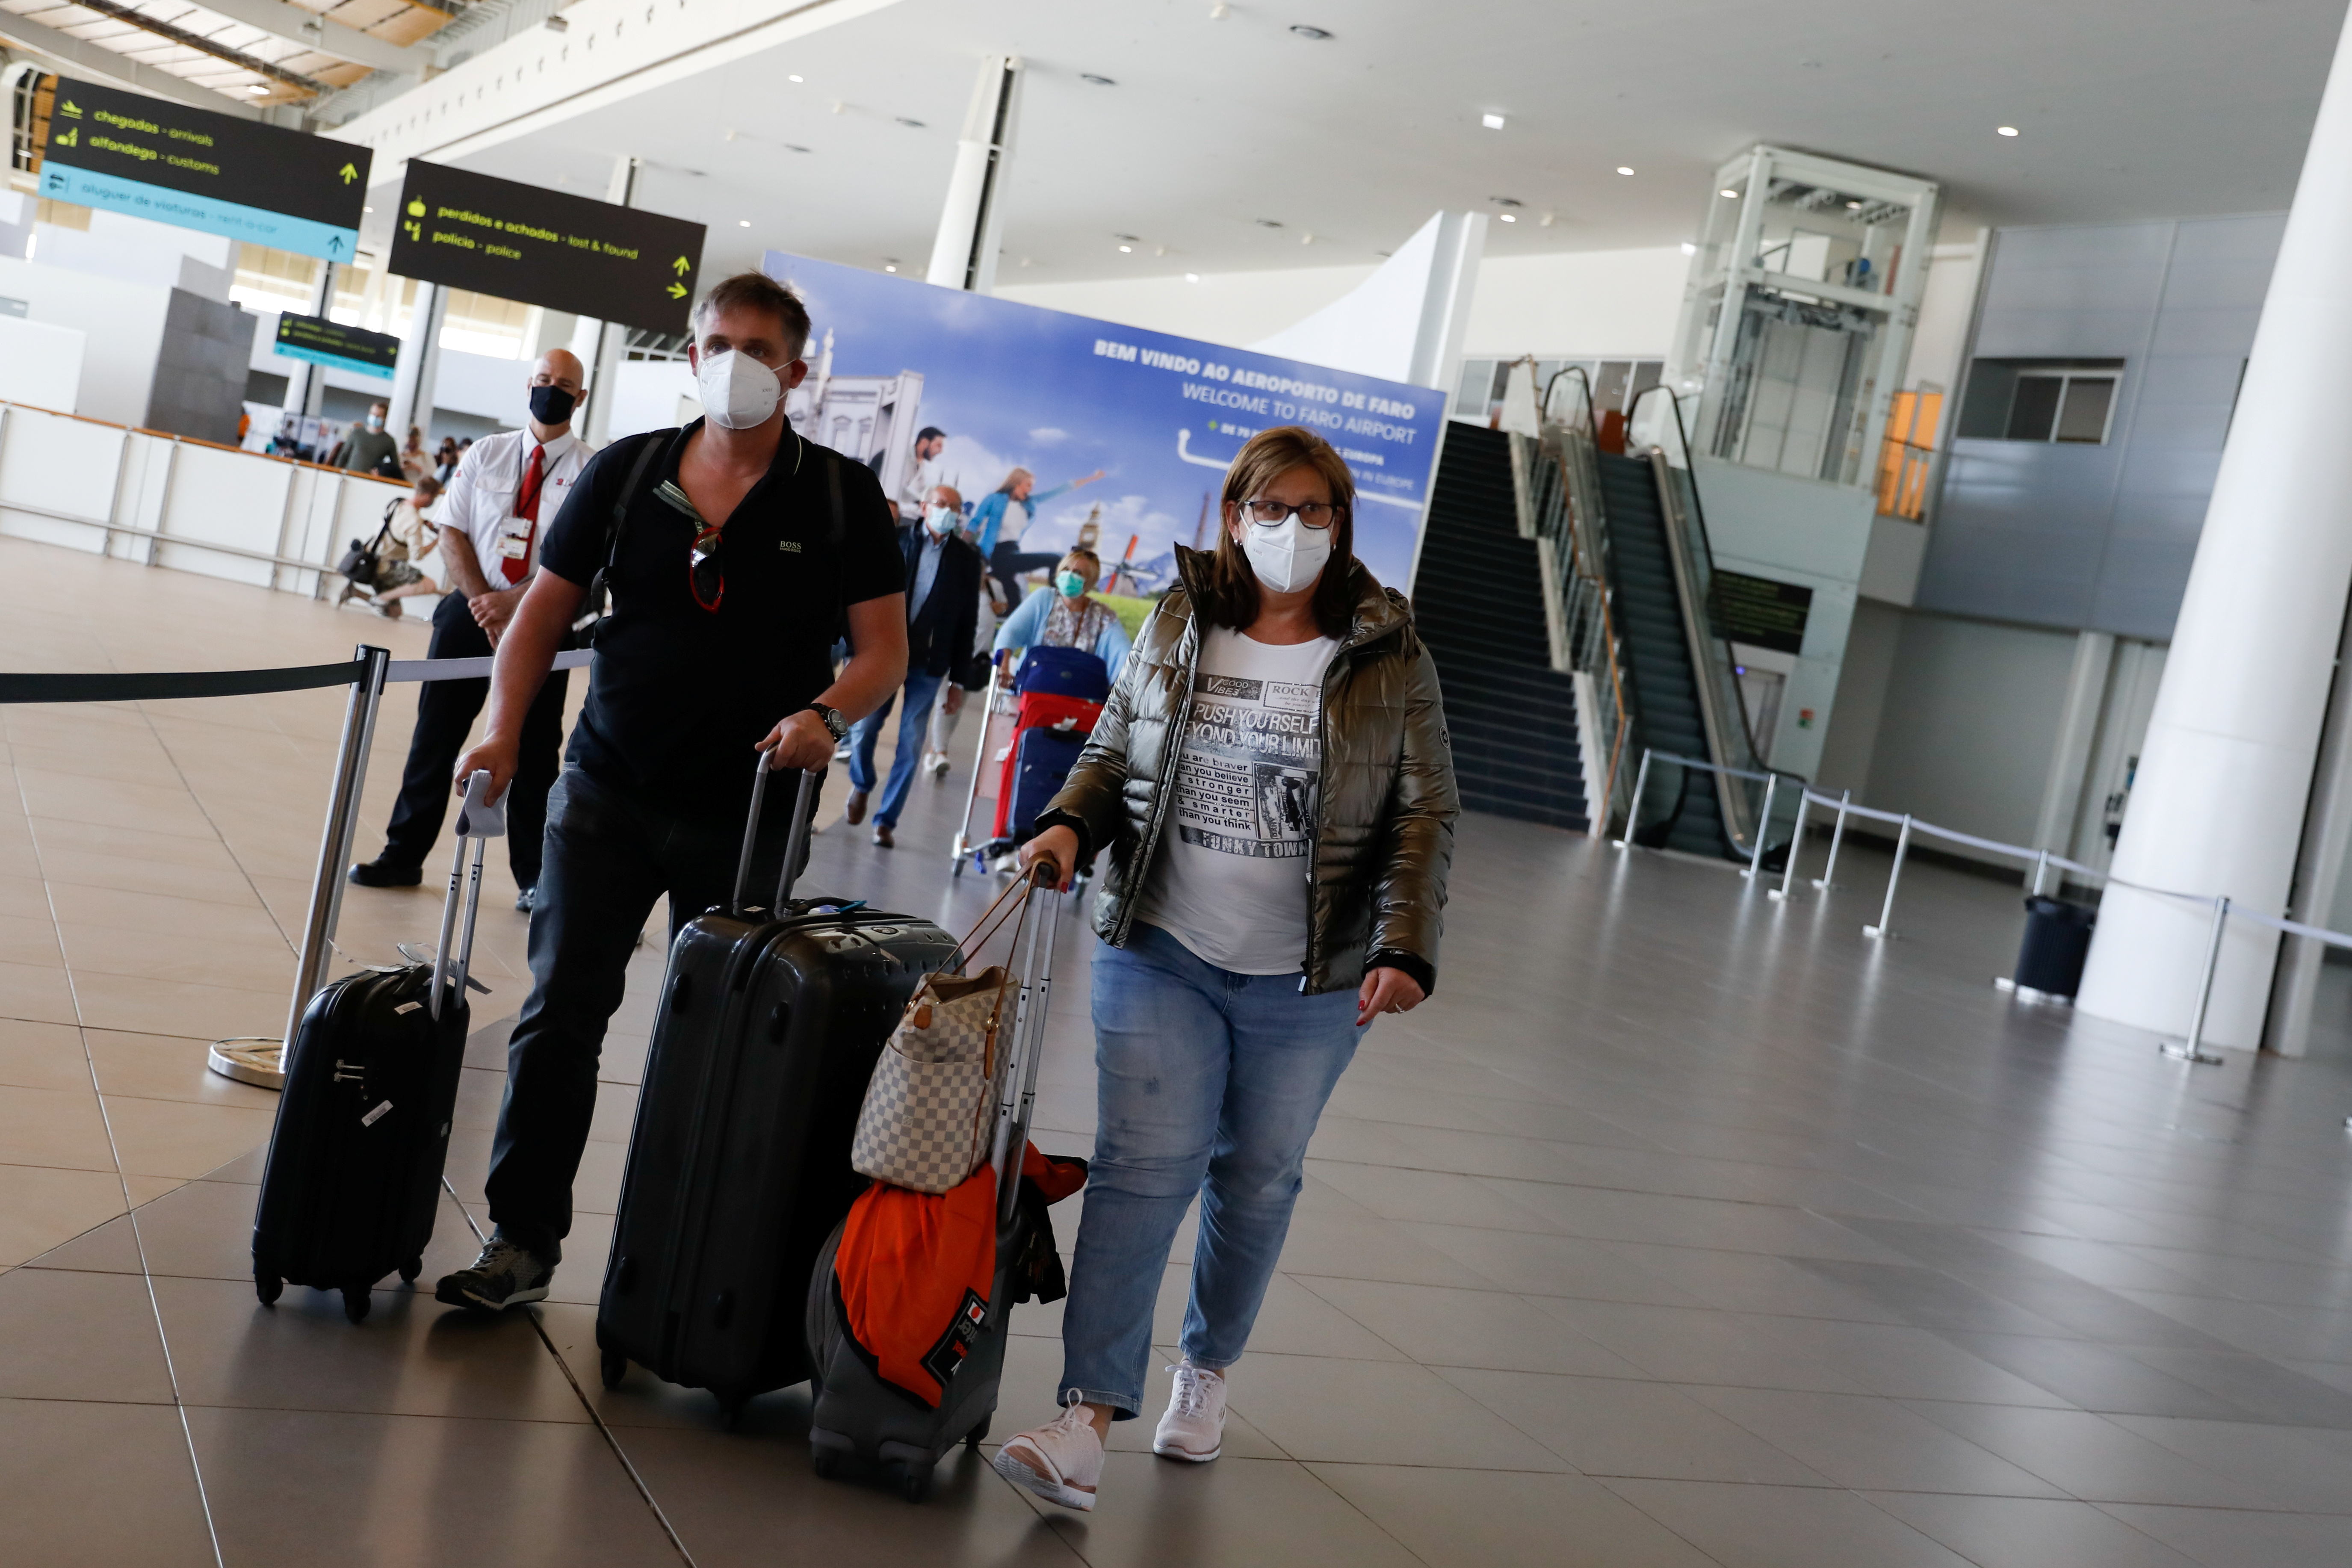 People arrive at Faro Airport from Manchester on the first day that Britons are allowed to enter Portugal without needing to quarantine, as coronavirus disease (COVID-19) restrictions continue to ease, in Faro, Portugal, May 17, 2021. REUTERS/Pedro Nunes